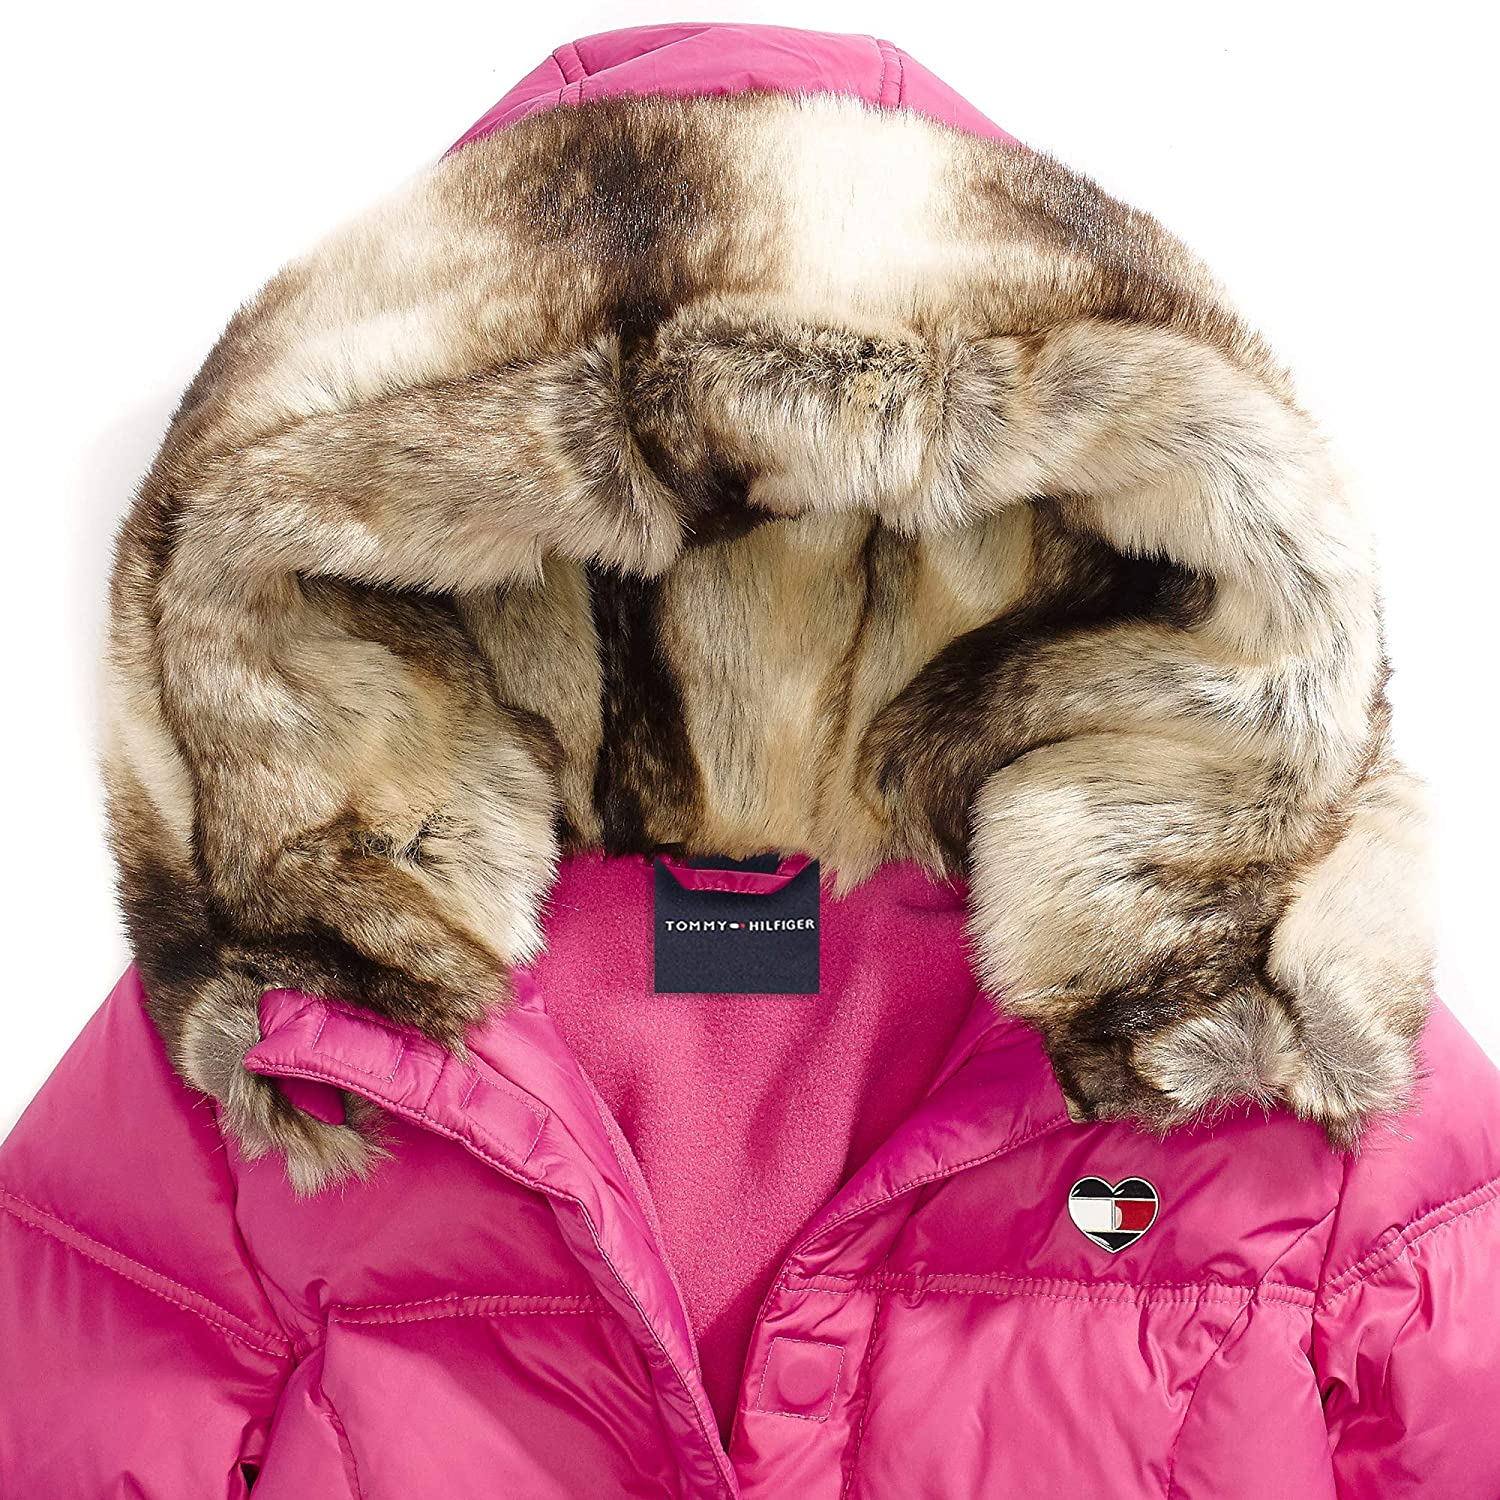 c469925c Tommy Hilfiger Adaptive Girls' Puffer Jacket with Magnetic Buttons and Faux  Fur Hood 7182781 larger image